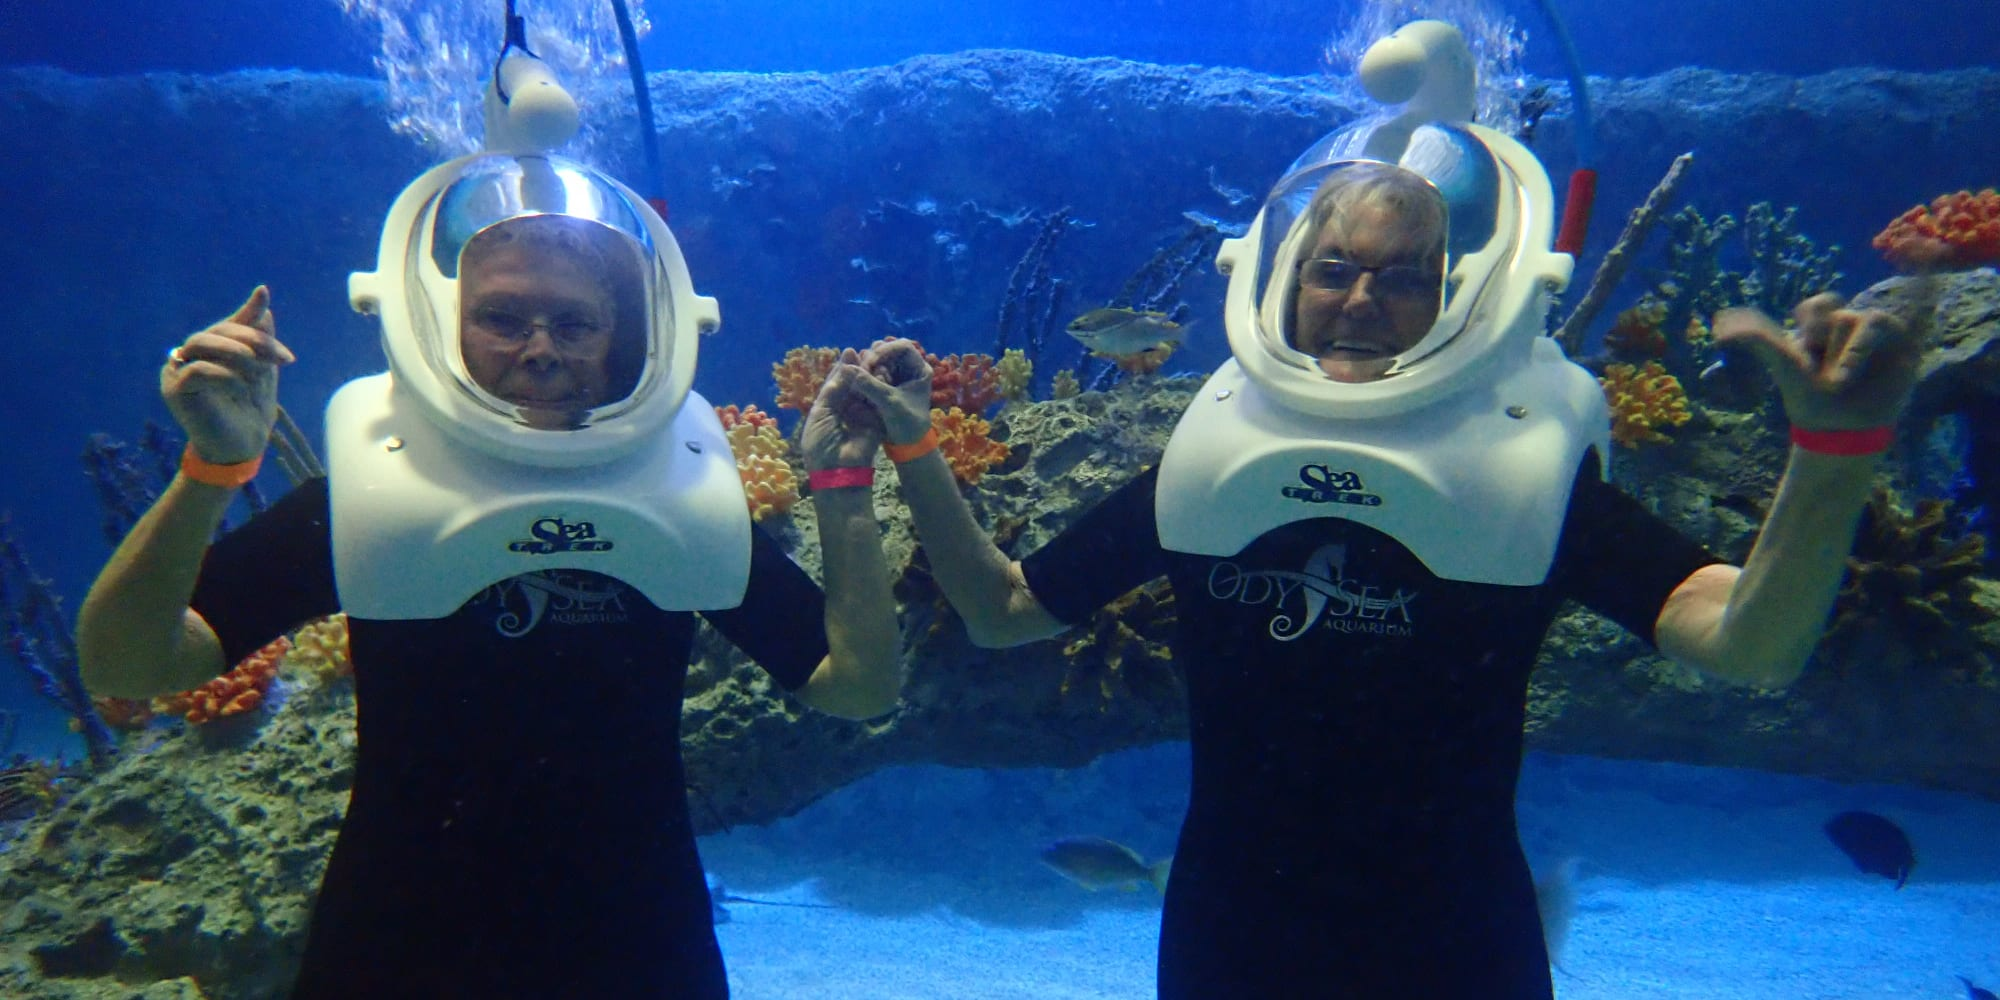 Two resident from Glenmoore Gracious Retirement Living in Happy Valley, Oregon scuba diving